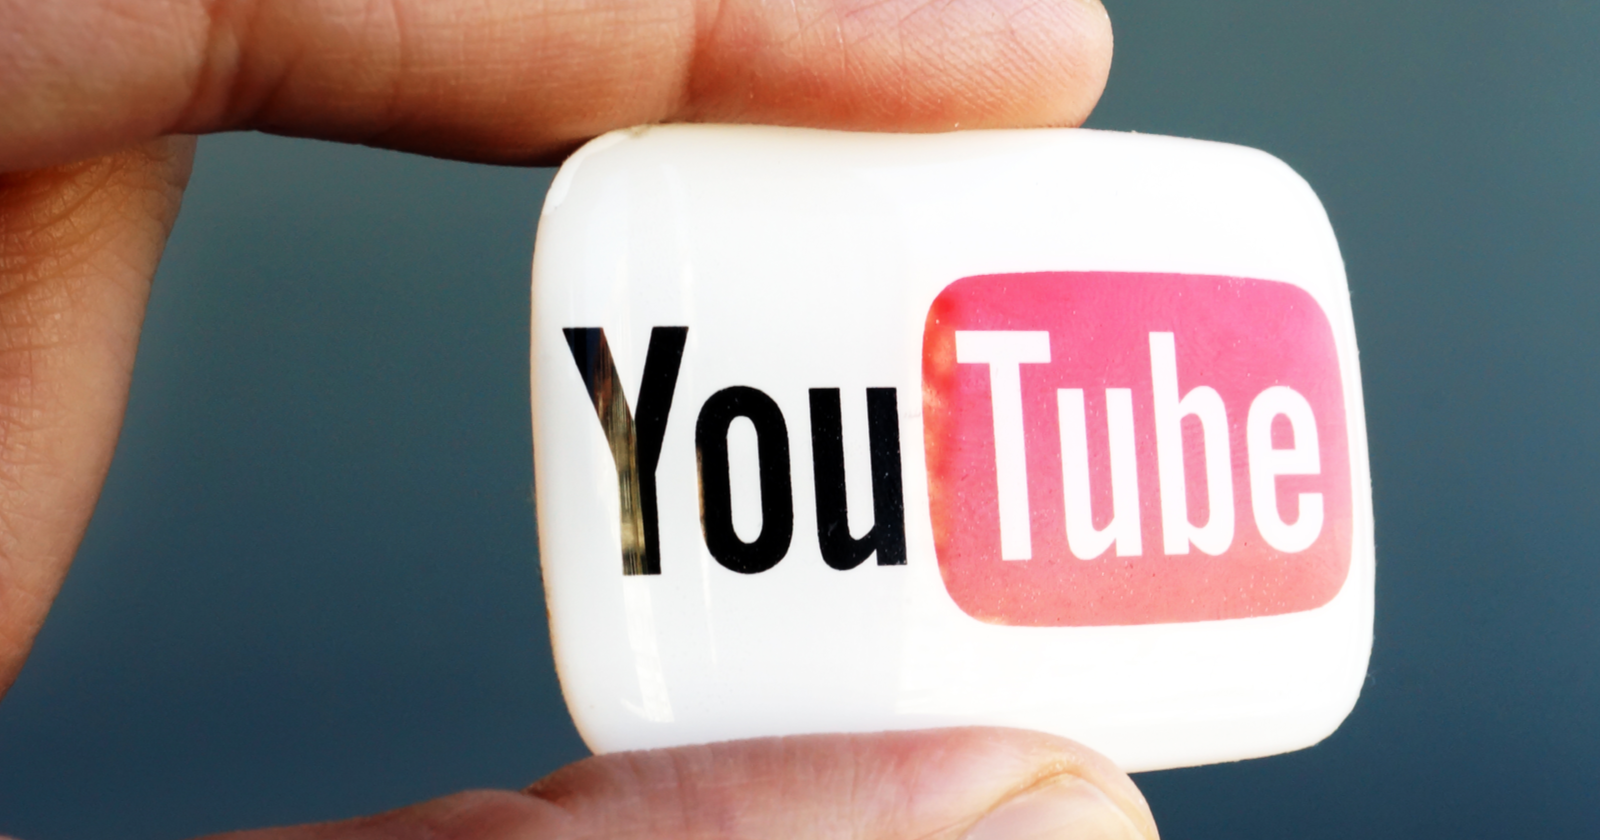 YouTube is Developing a Tool That Creates 6-Second Ads Automatically - Search Engine Journal